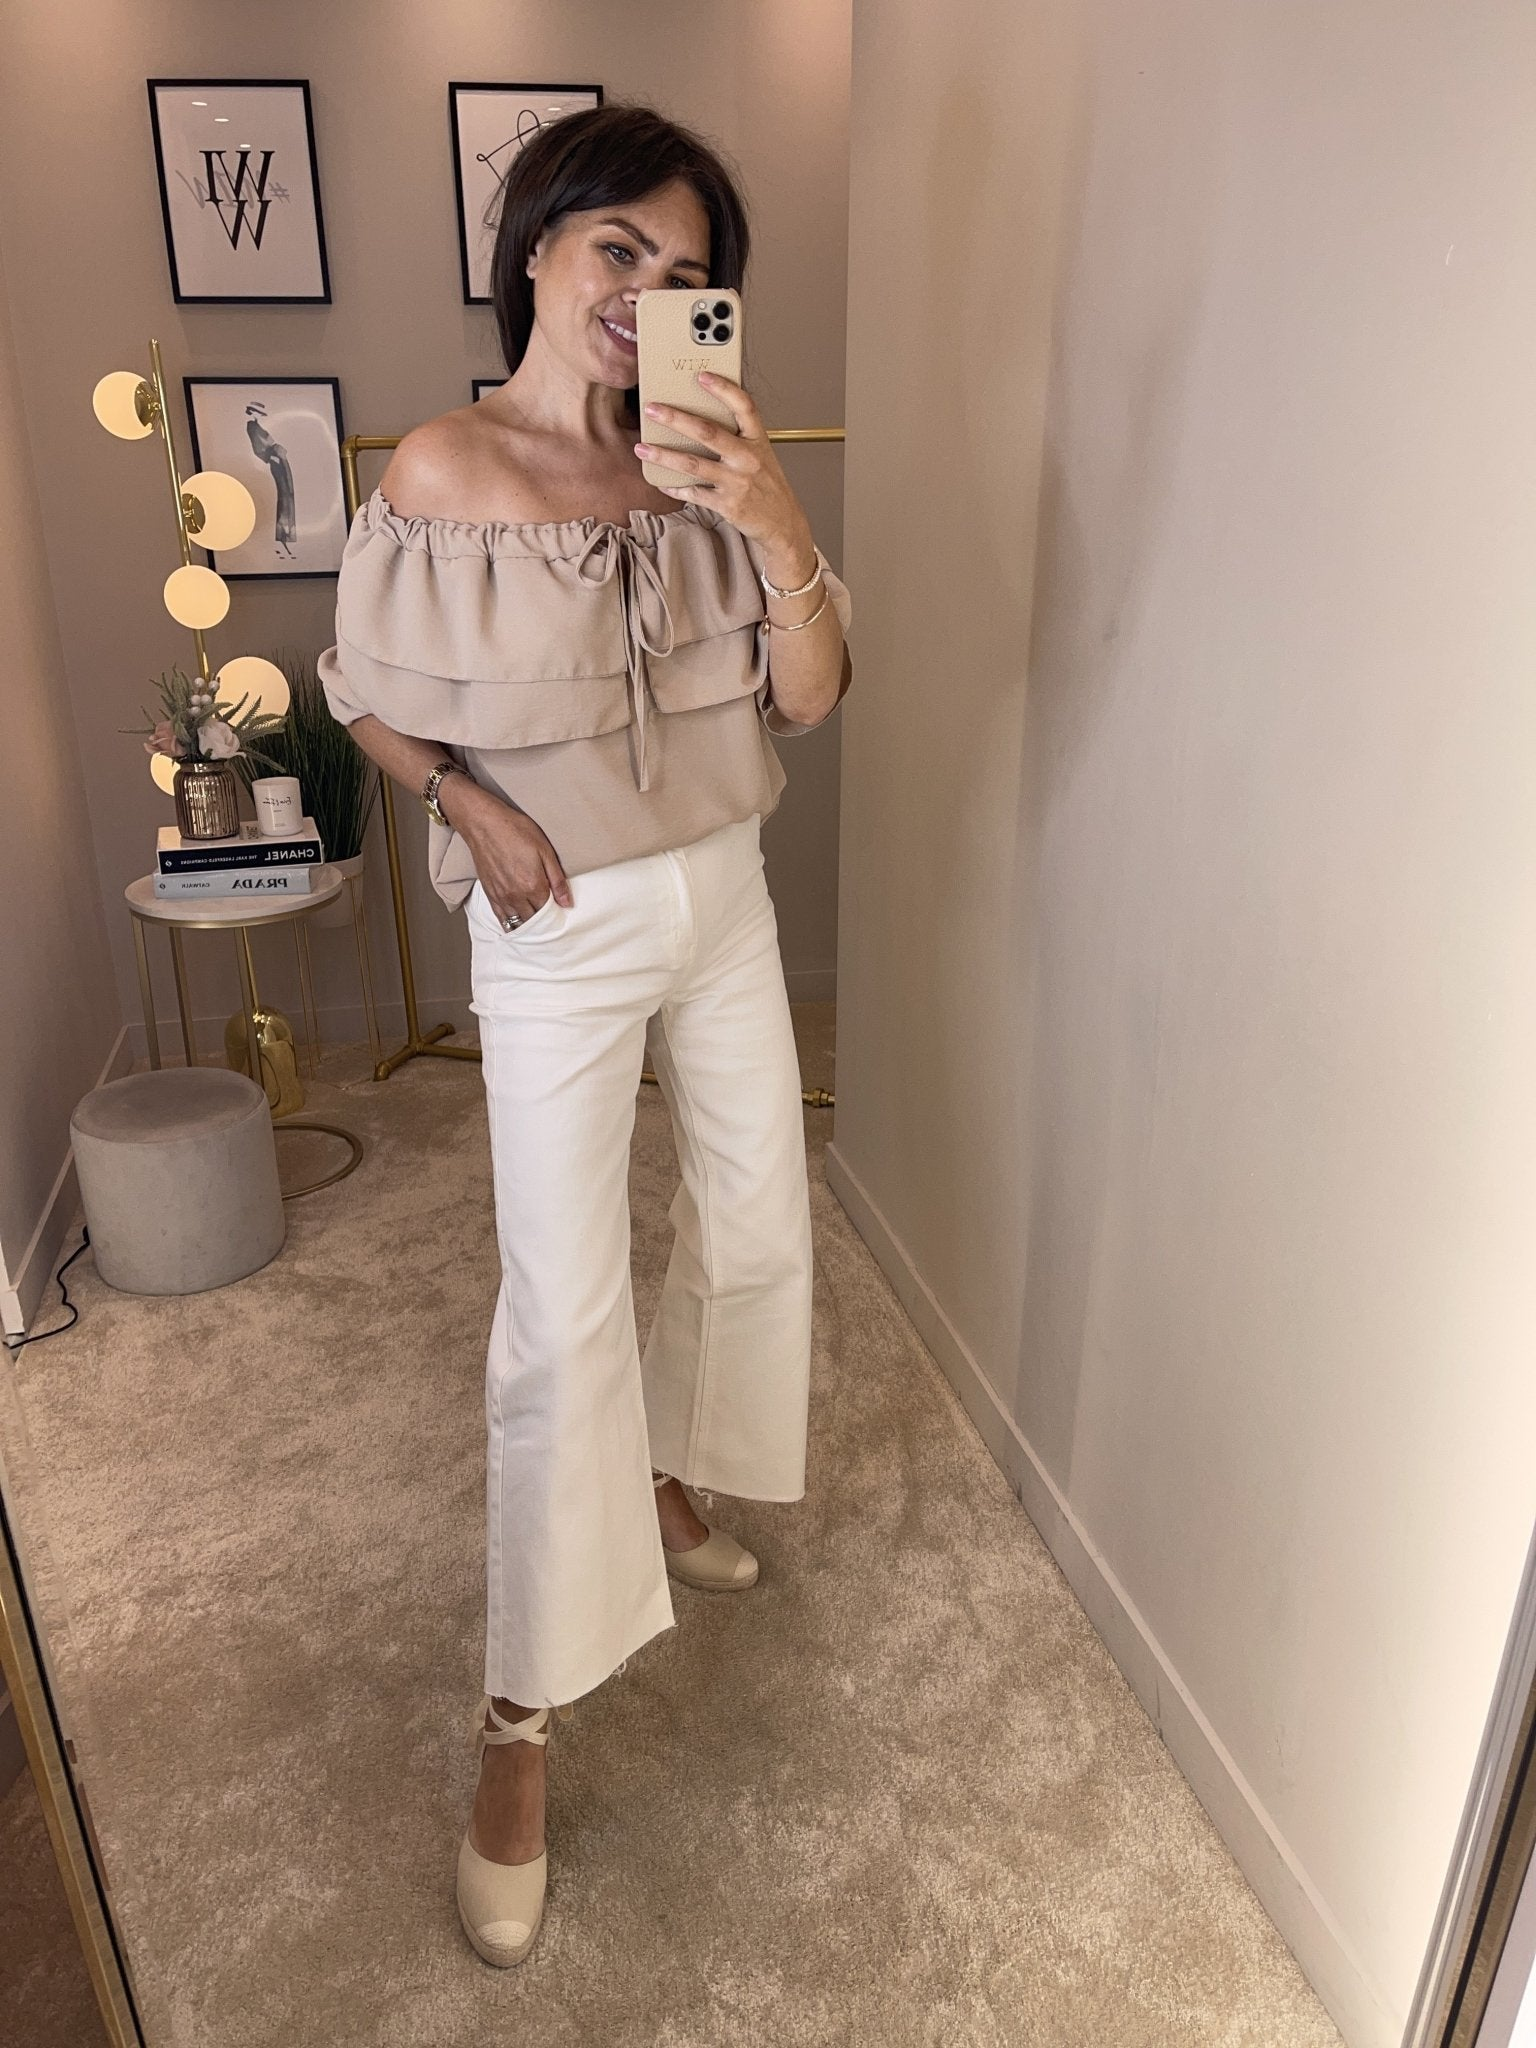 Hayley Wide Leg Jean In White - The Walk in Wardrobe